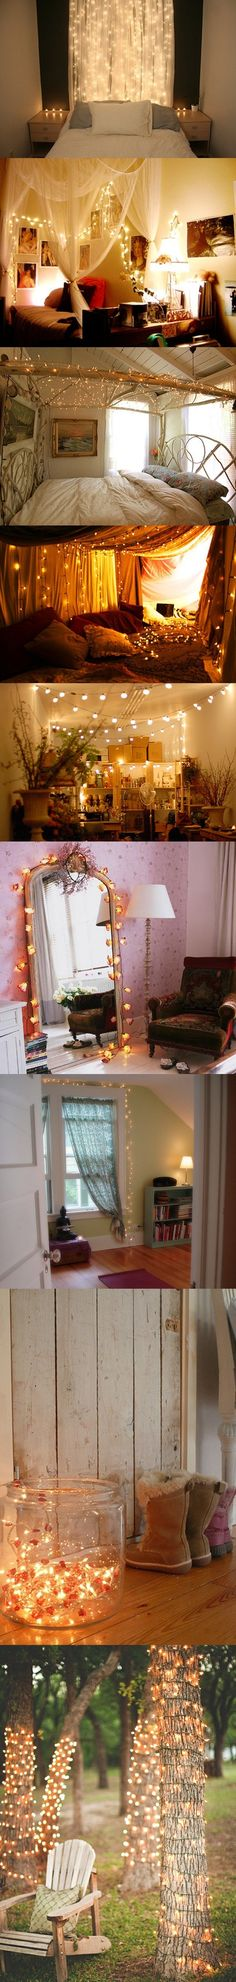 Ideas for string lights -  The last one though, on the trees >>